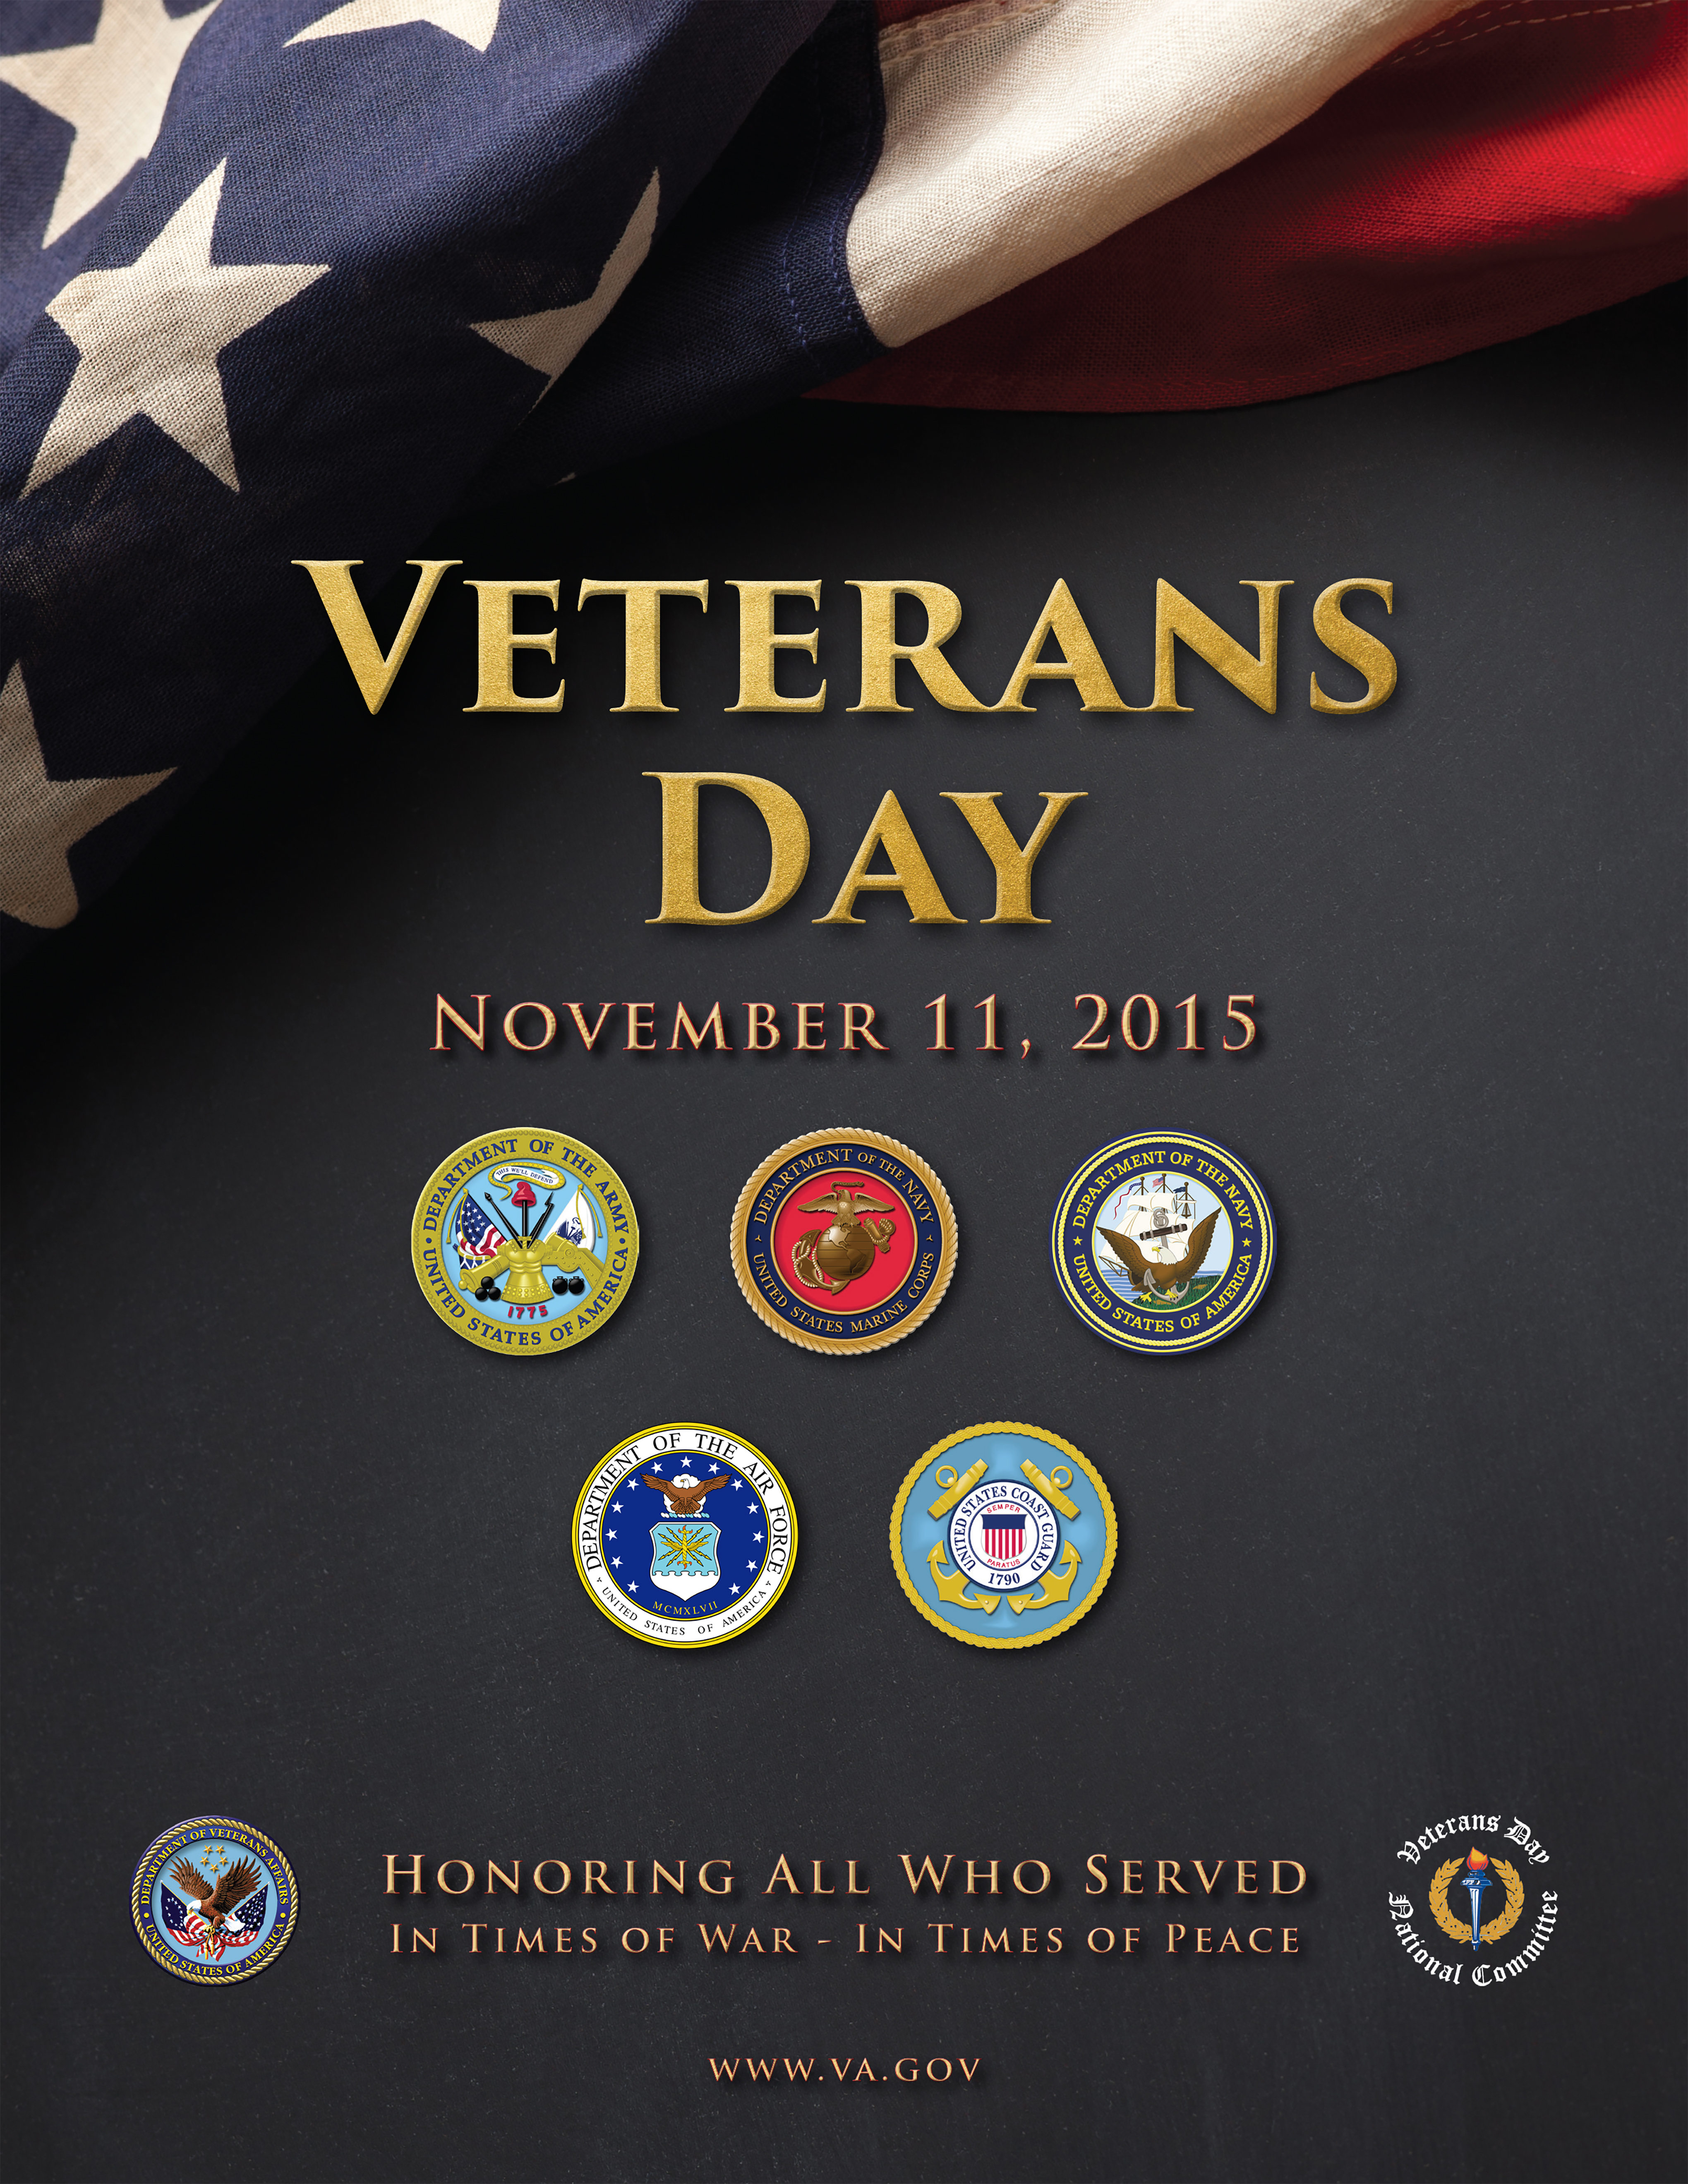 Veterans Day: a time of honor and healing